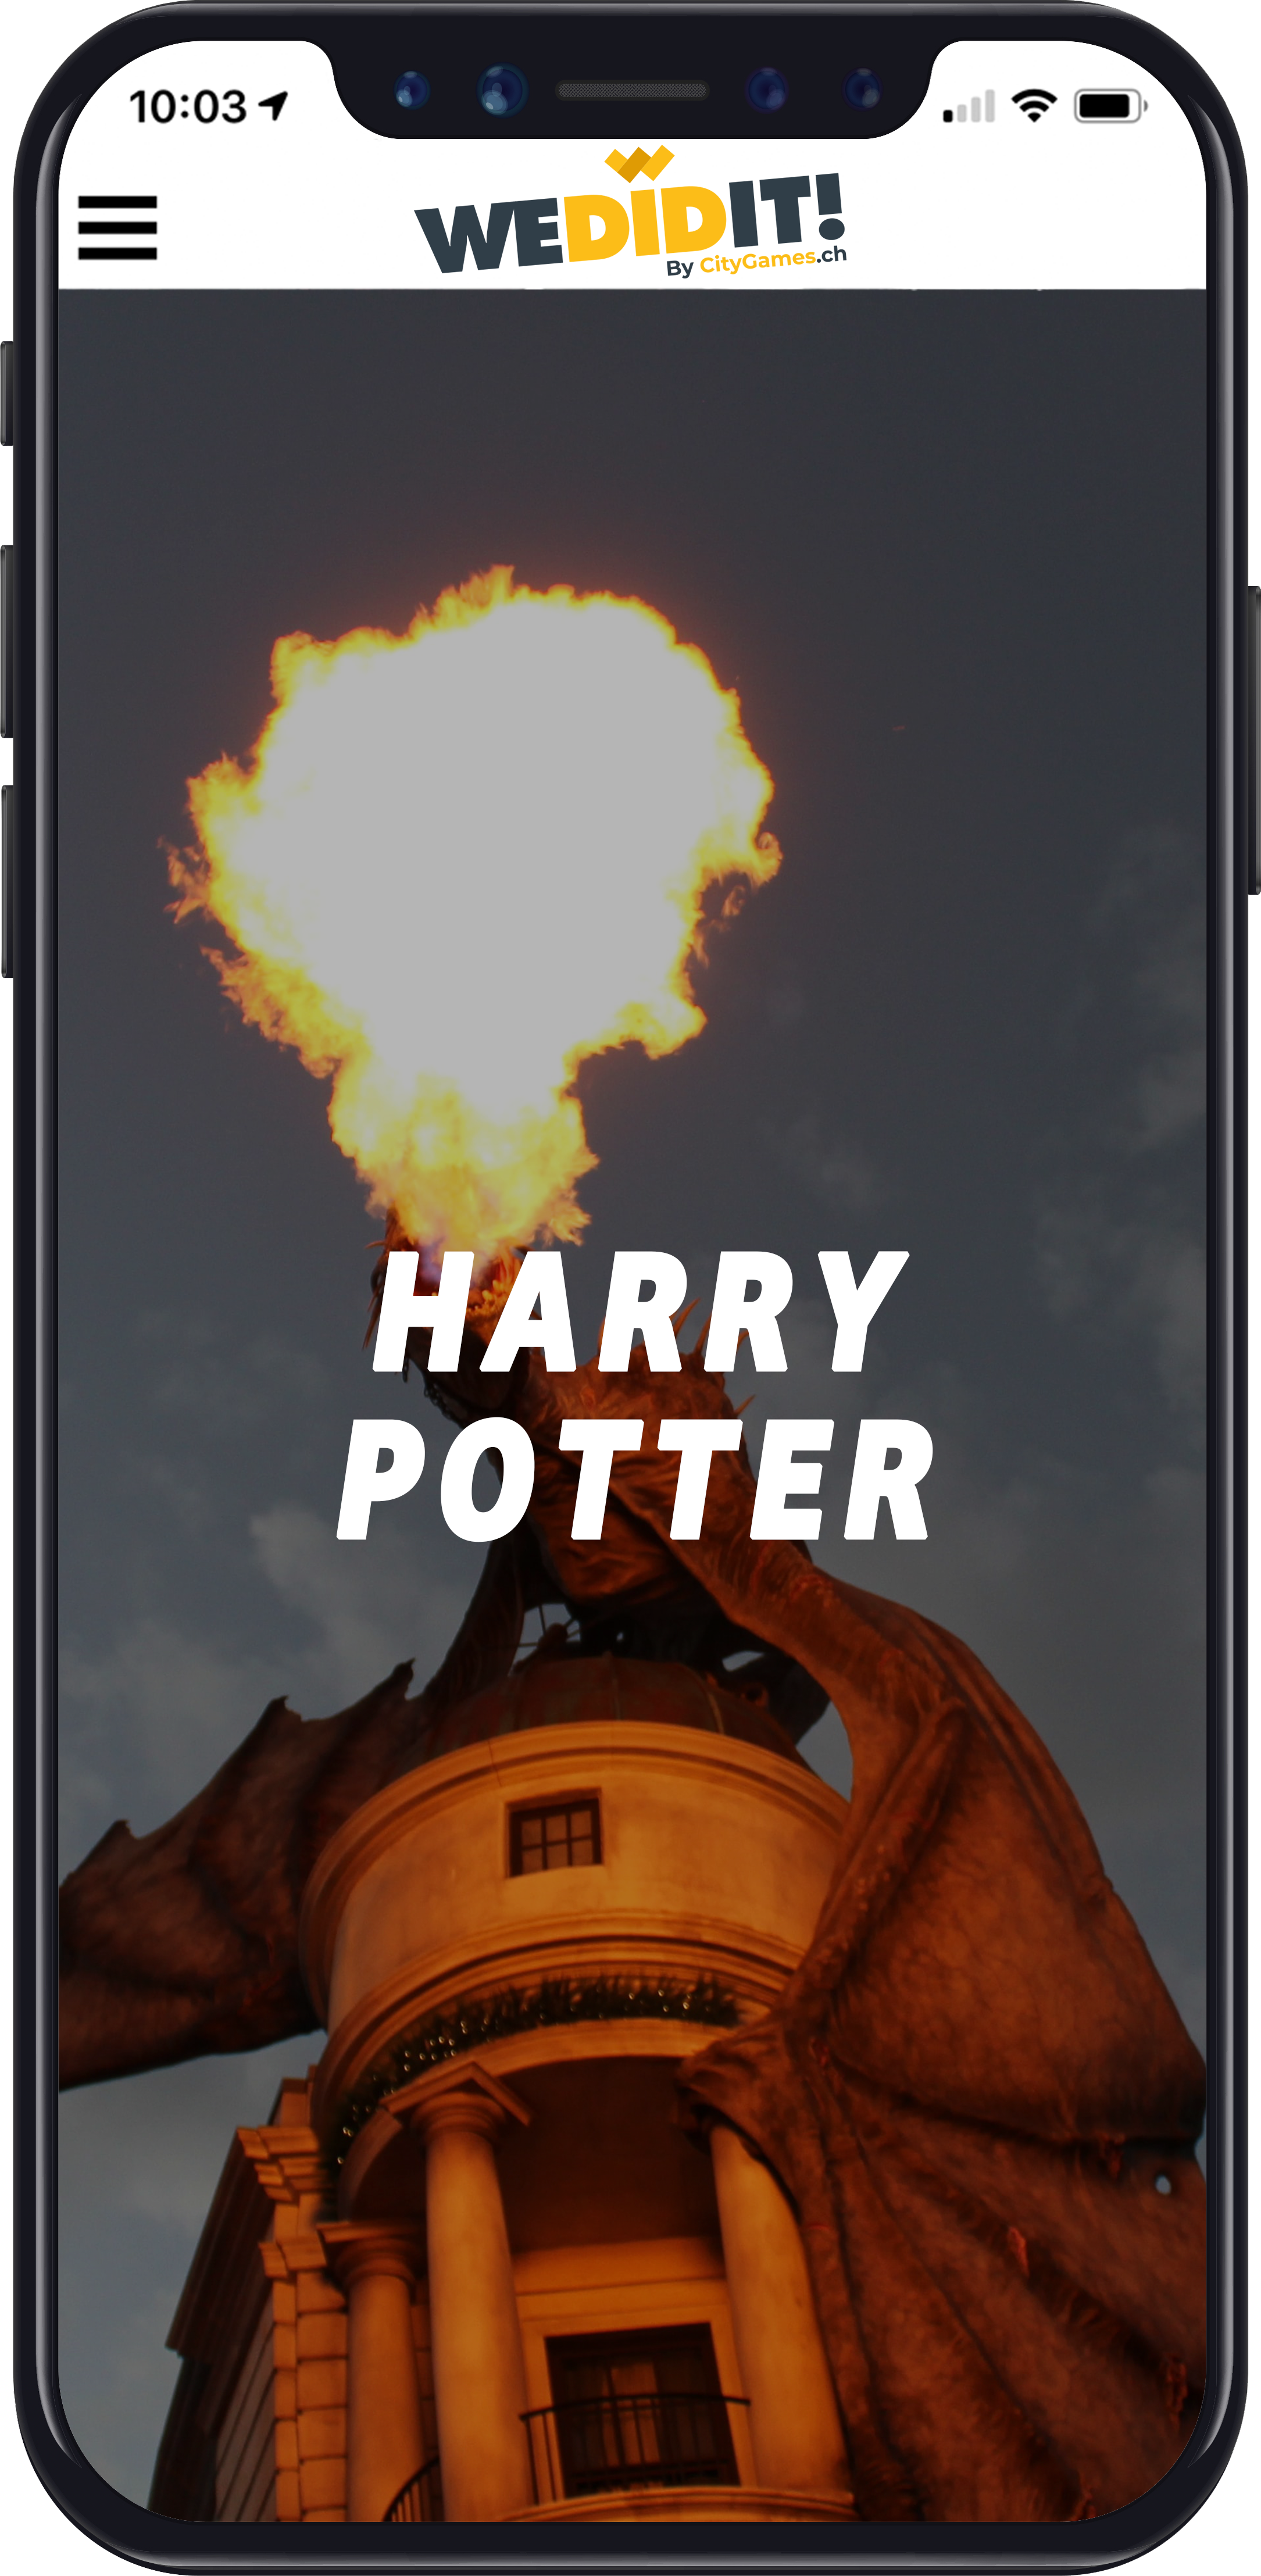 iPhone_HarryPotter_Wedidit